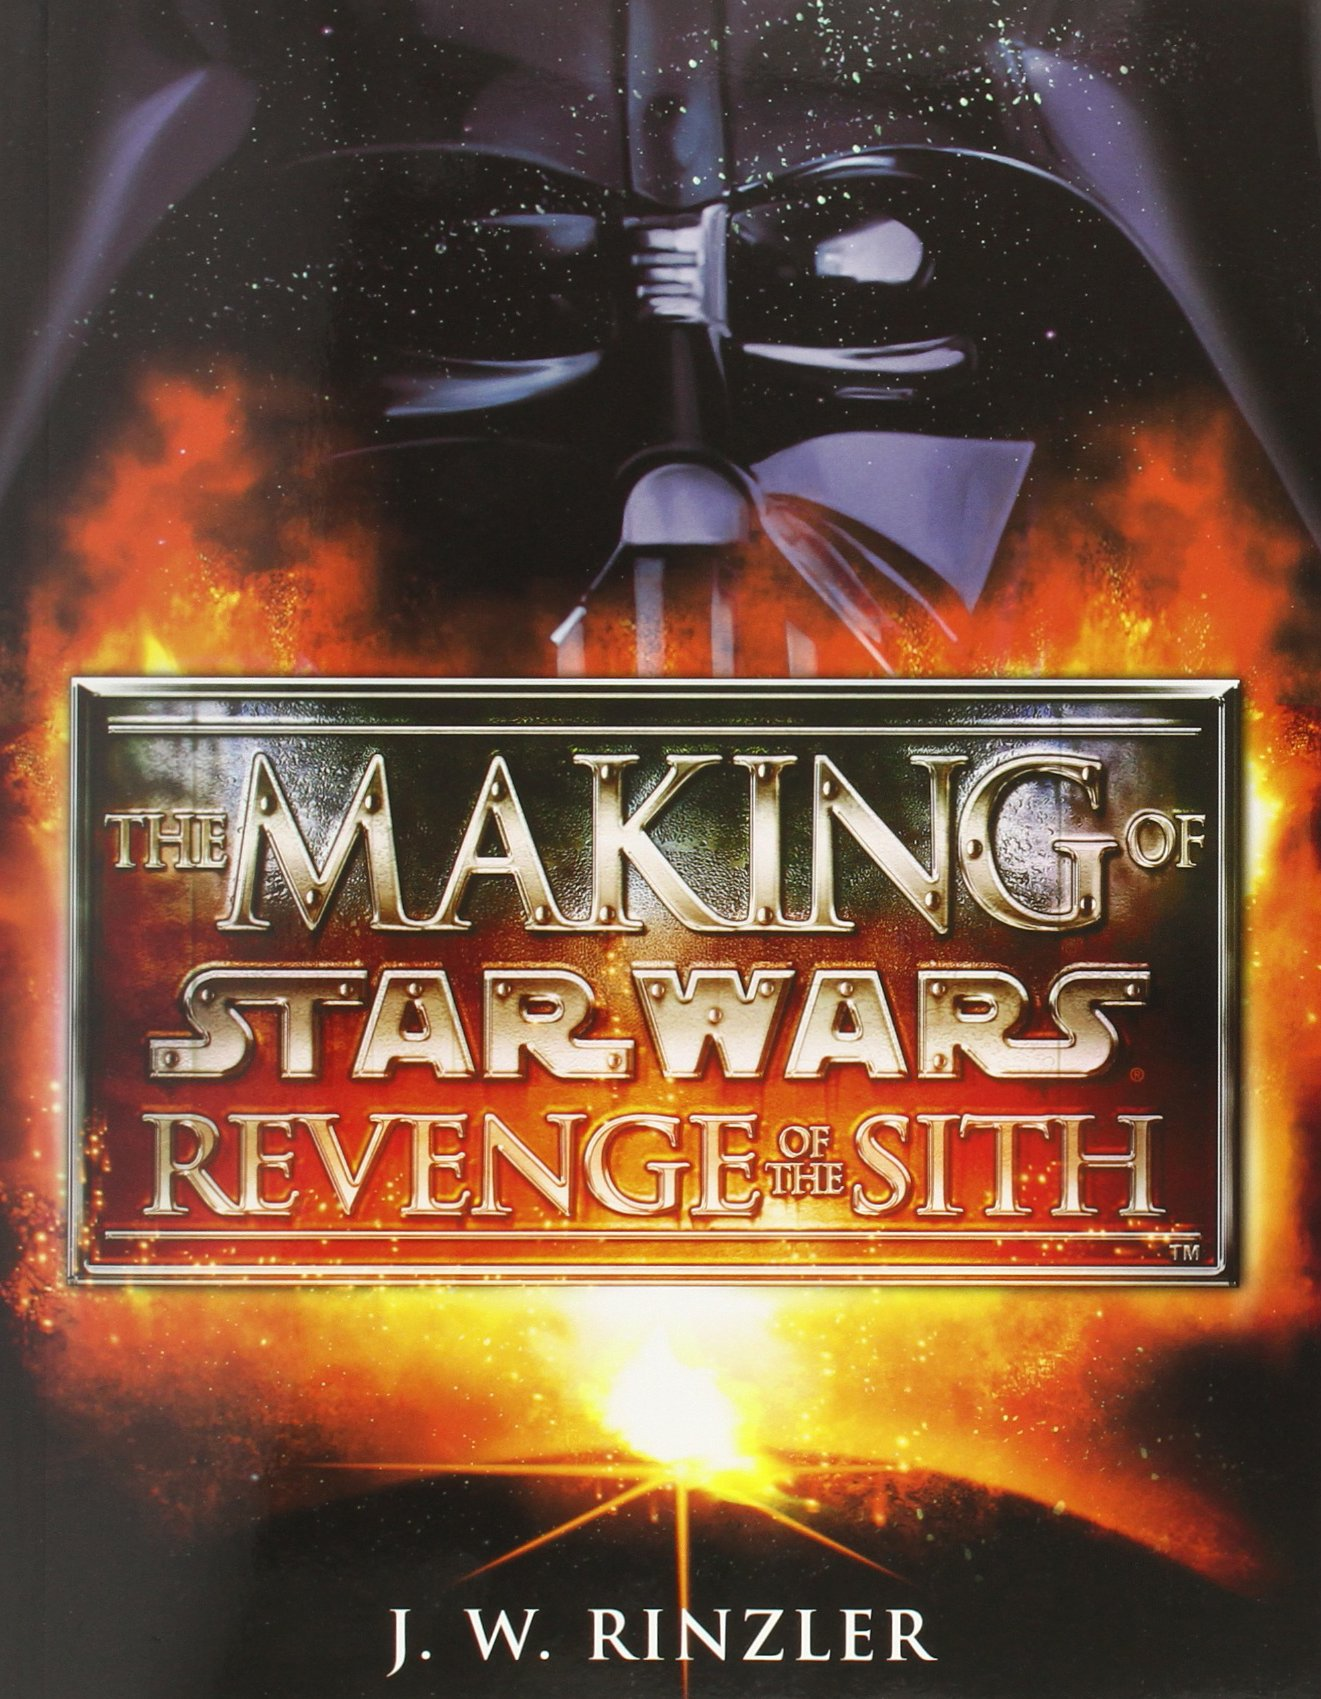 The Making Of Star Wars Episode Iii Revenge Of The Sith Buy Online In Chile Missing Category Value Products In Chile See Prices Reviews And Free Delivery Over Clp50 000 Desertcart